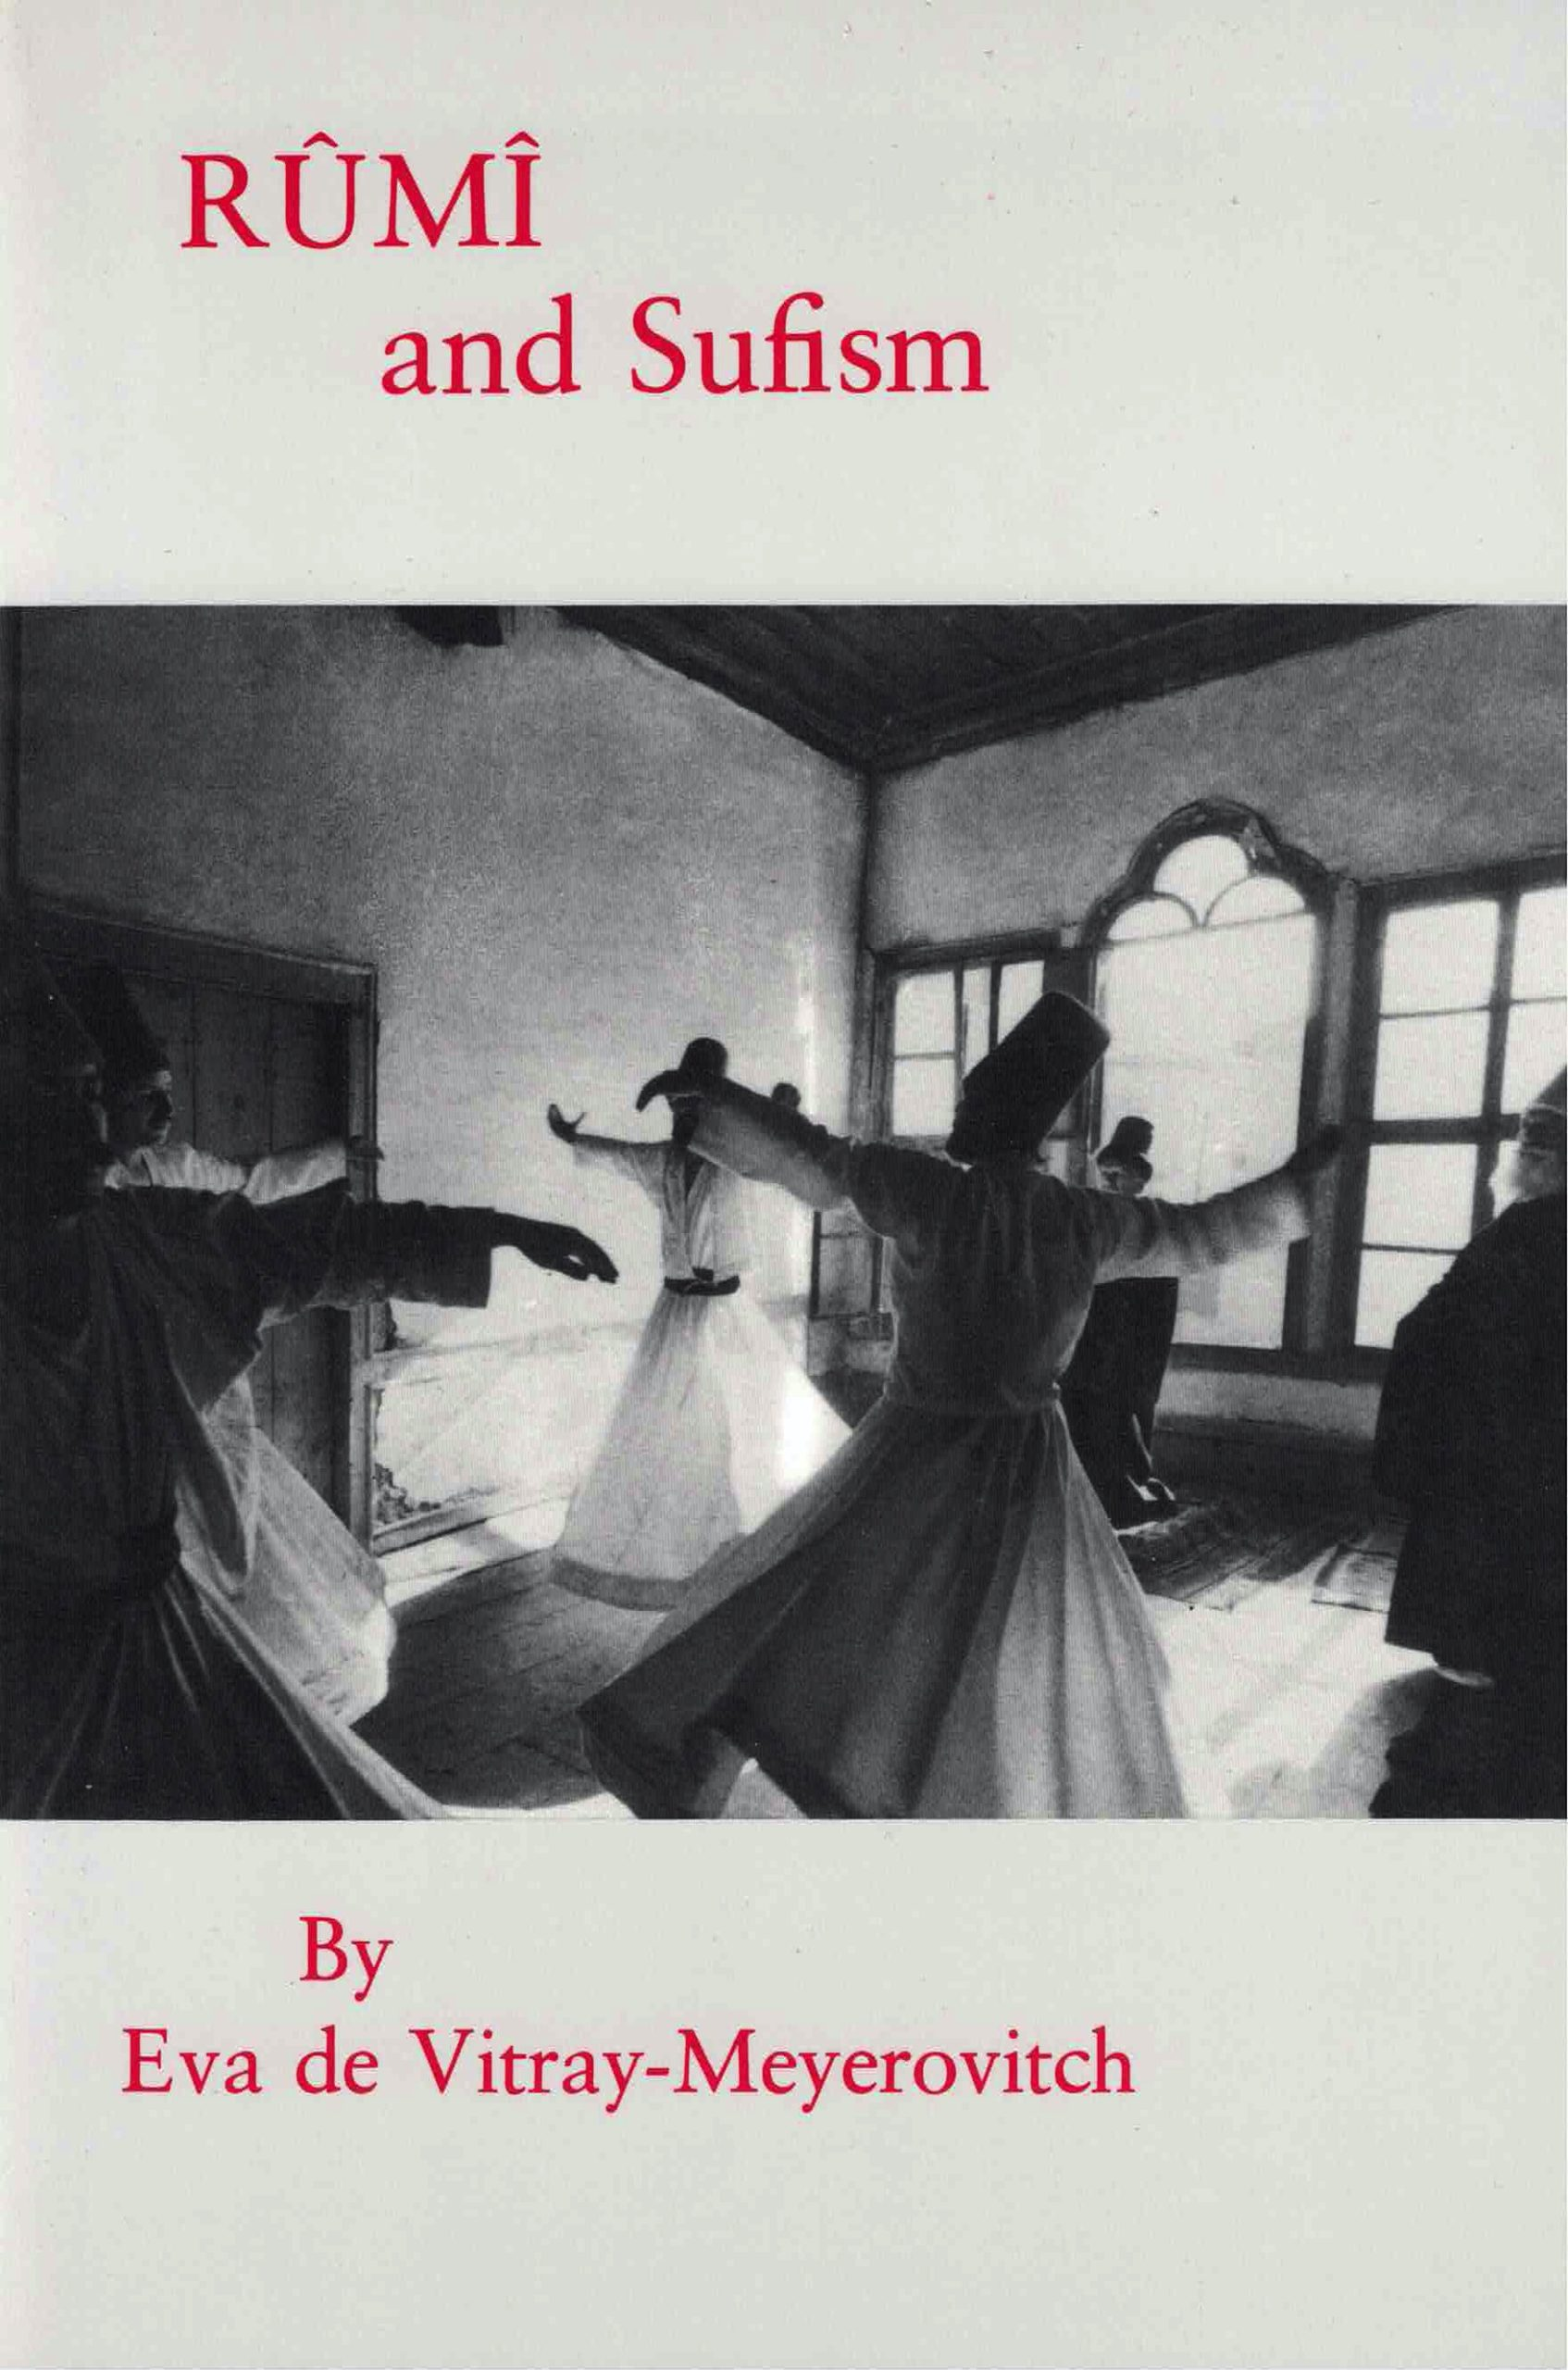 cover of Rumi and Sufism by Eva de Vitray-Meyerovitch; b&w photo of men dnacing in a cricle, their arms out, wearing white robes and cylindrical caps, photo is on a white background with title above and author name below in red typing